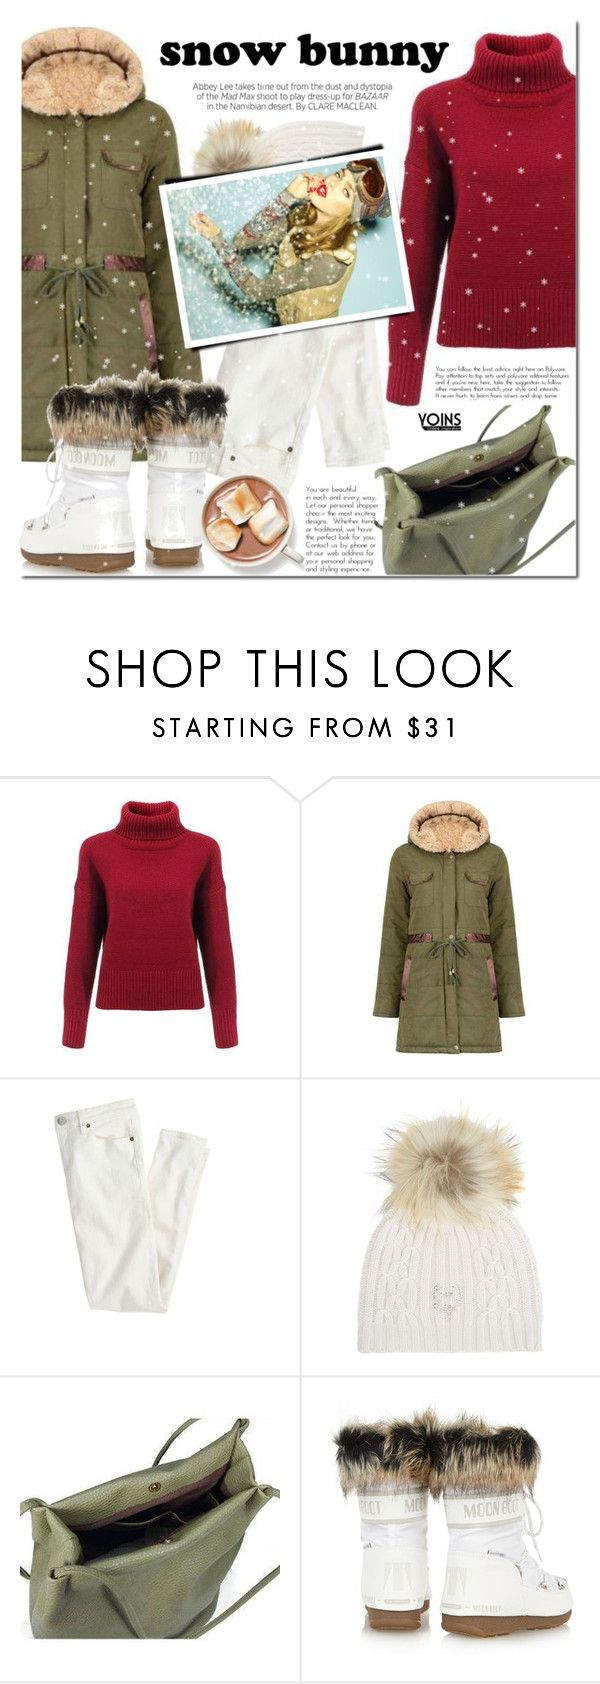 """Snow Bunny Style"" by mada-malureanu ❤ liked on Polyvore featuring Kershaw, J.Crew, M. Miller, Moon Boot and snowbunny"